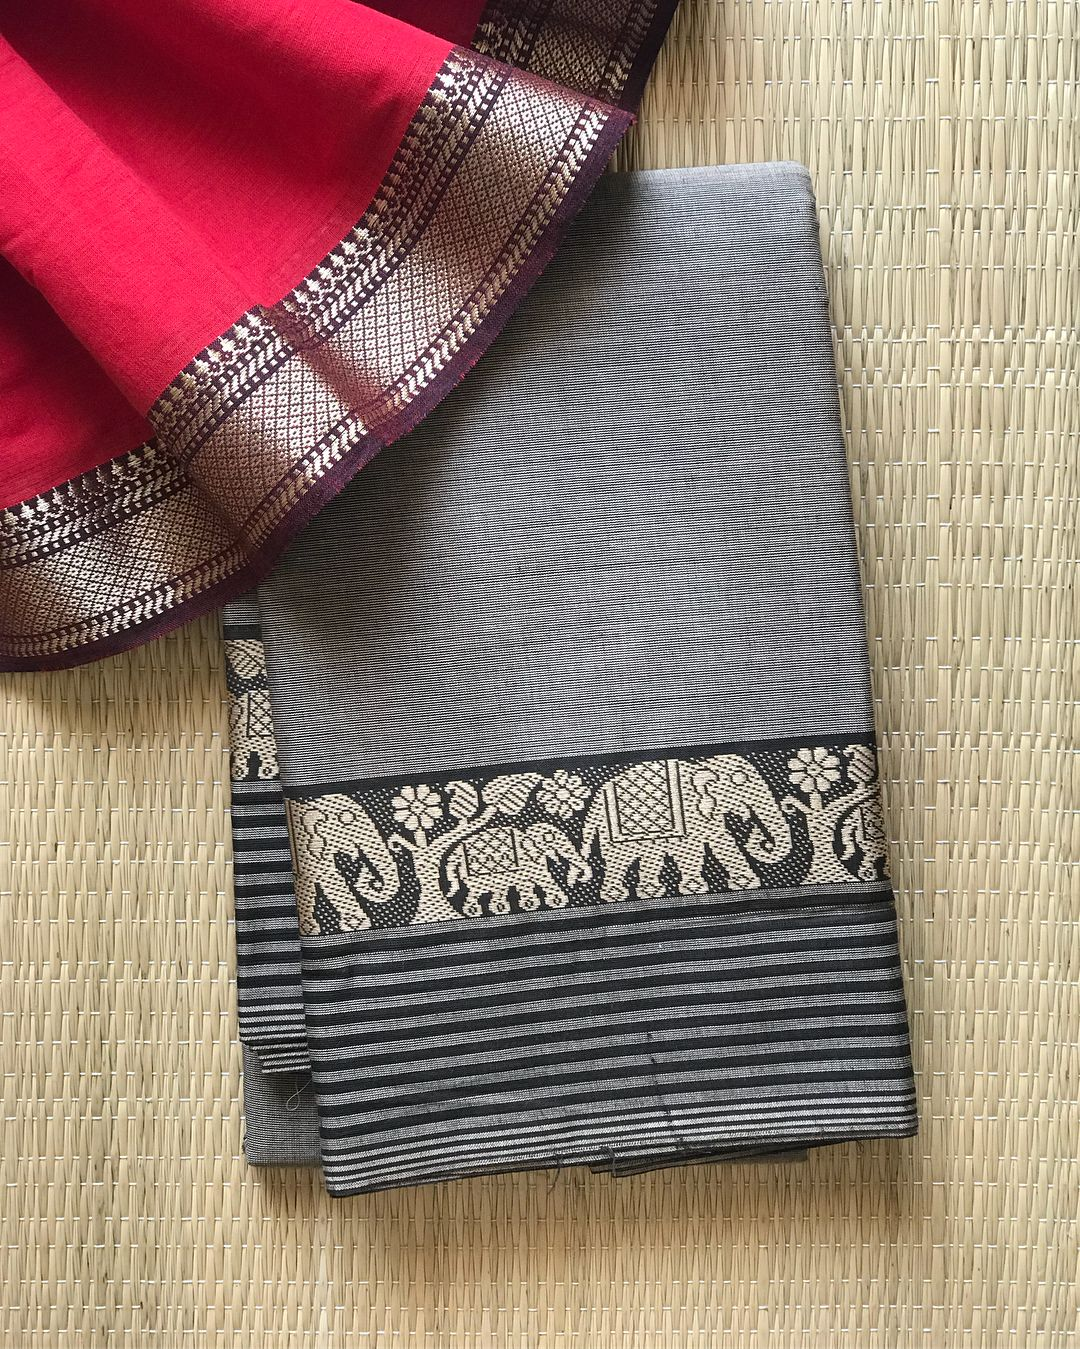 5c88fedef2 Booked Chettinad Cotton// Elephant Grey with Elephant Ramping*Border !  Paired up with Mangalgiri cotton blouse piece one meter. DM…